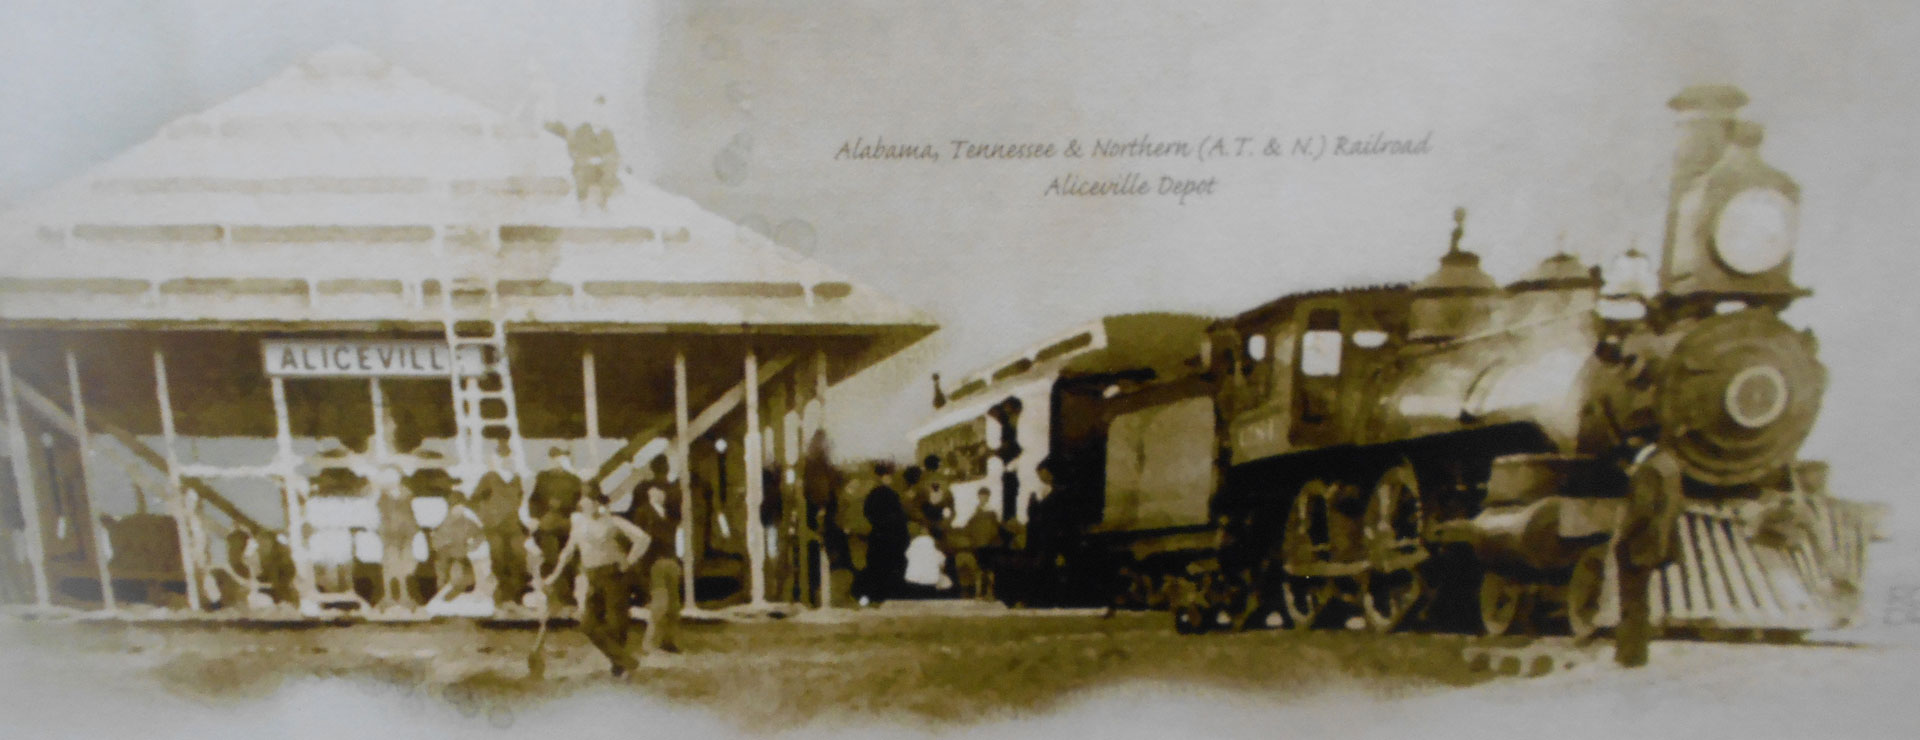 AT&N (Alabama, Tennessee and Northern) railroad depot